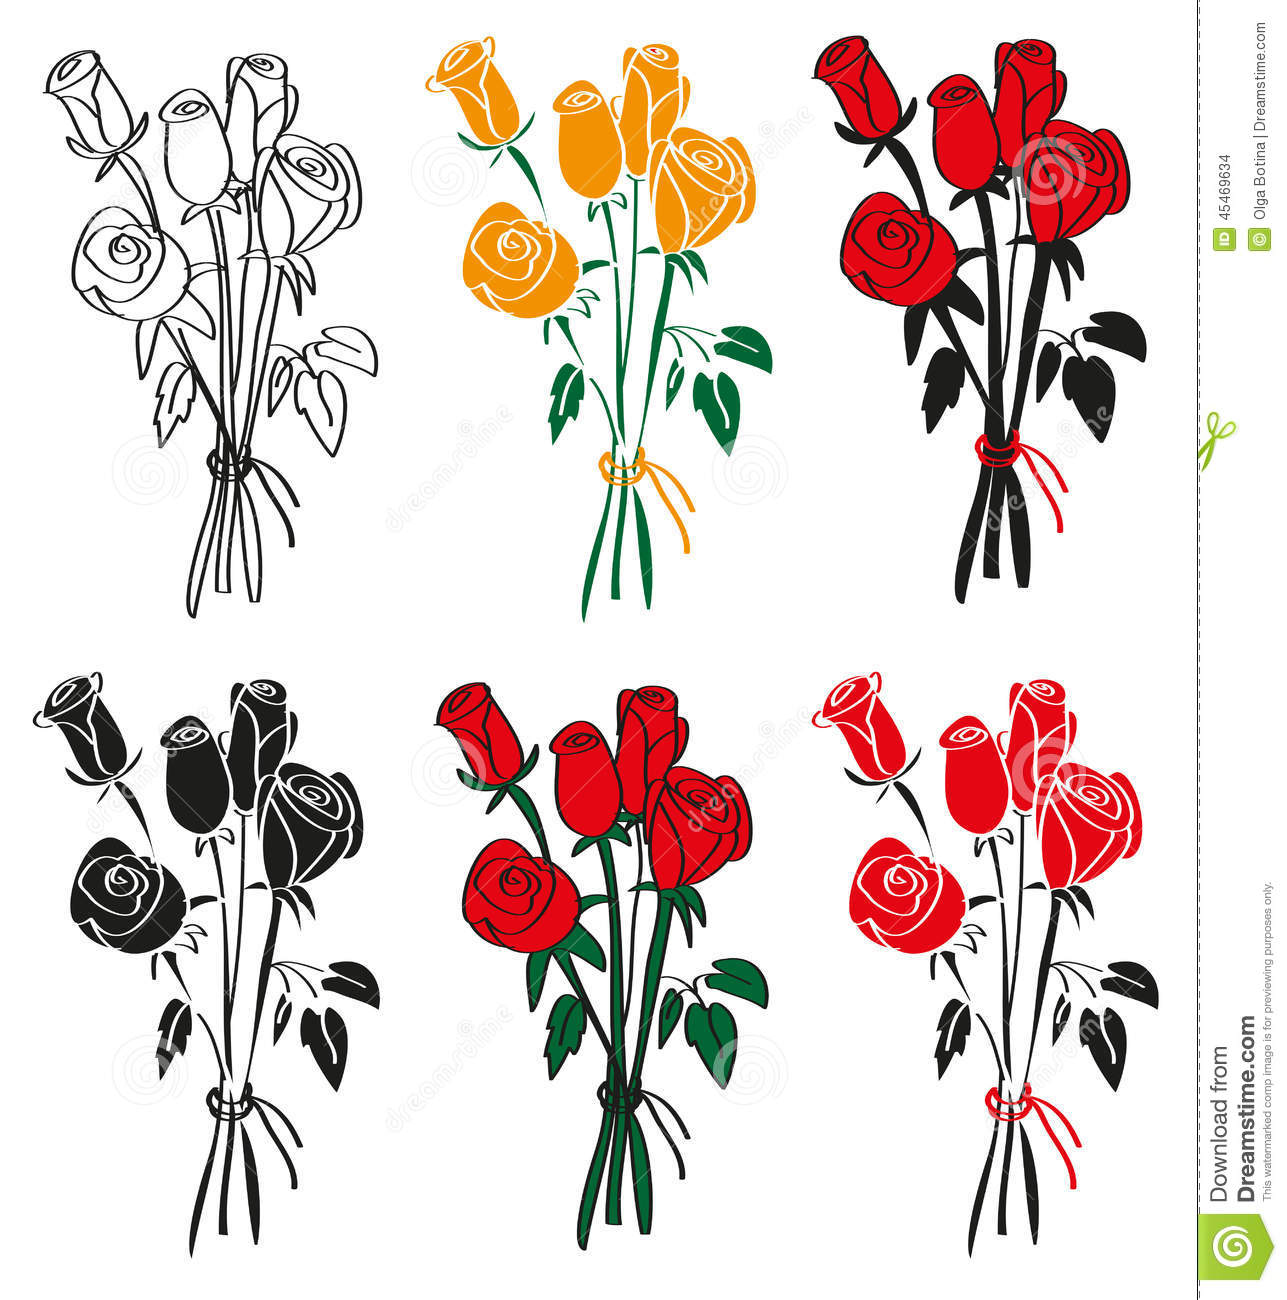 Bouquet of roses stock vector illustration of blossom 45469634 download bouquet of roses stock vector illustration of blossom 45469634 izmirmasajfo